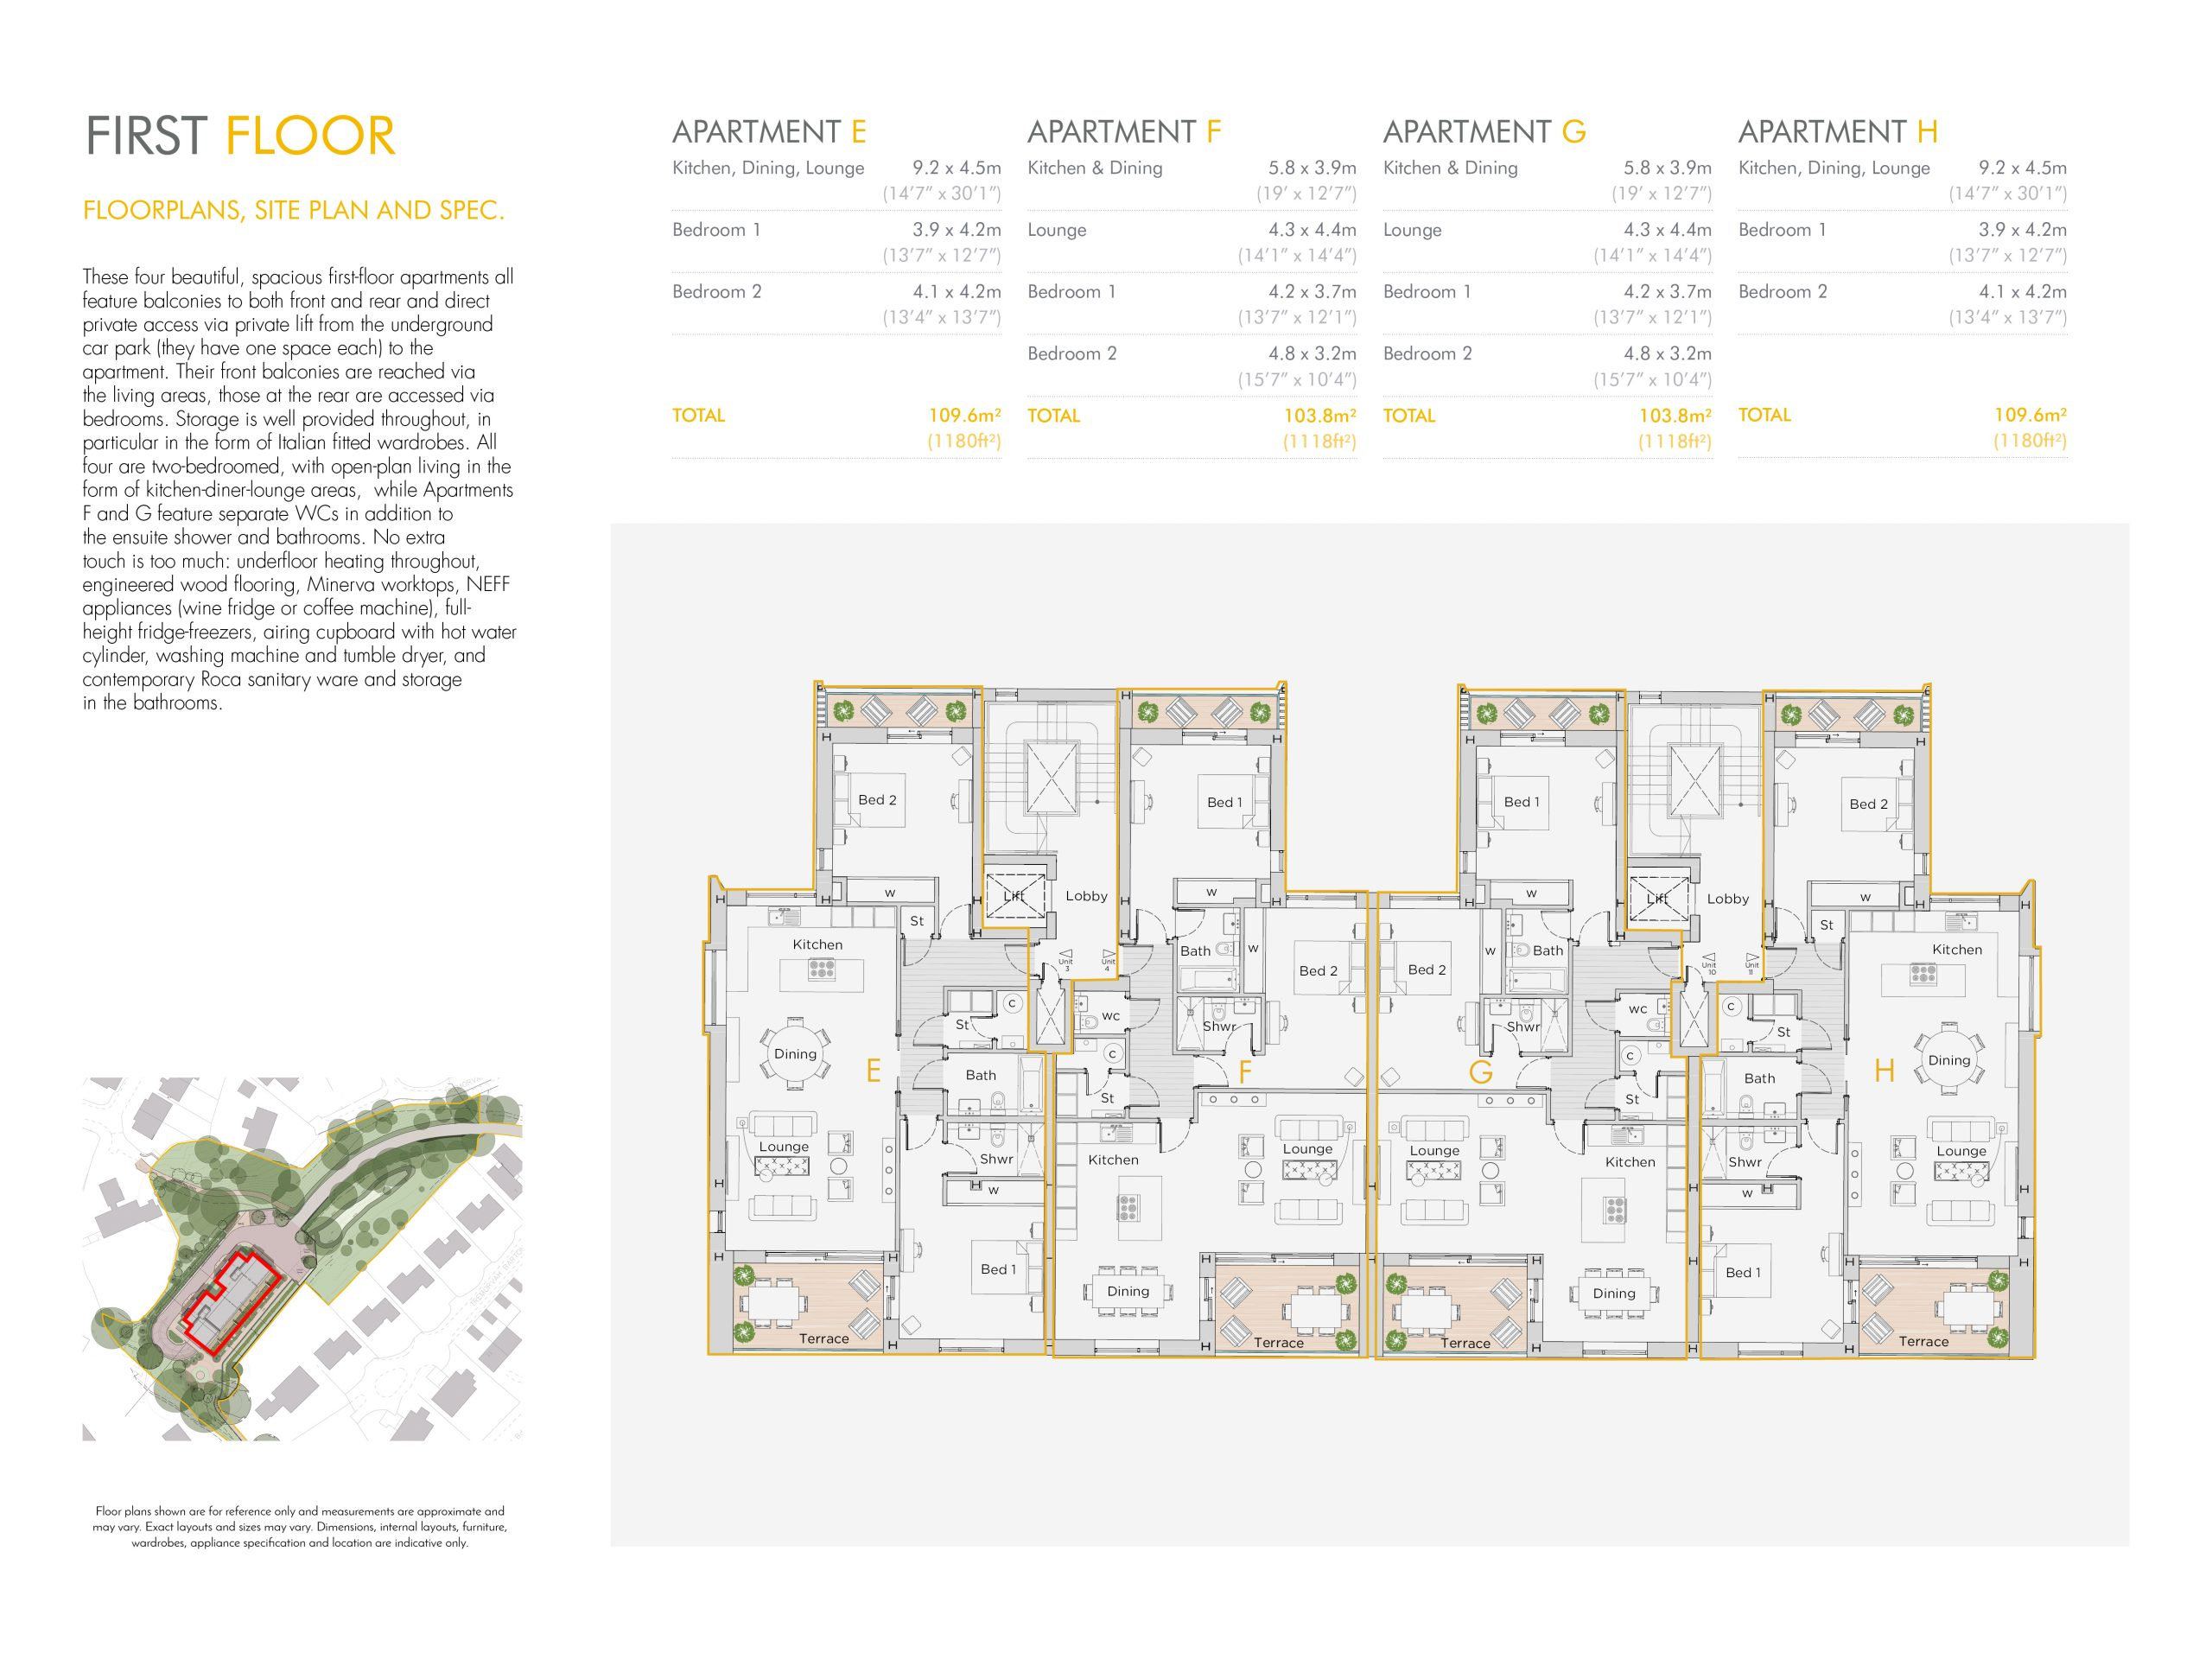 Stephens and stephens developers The Hideaway Truro cornwall Floorplans 1200x900 first floor